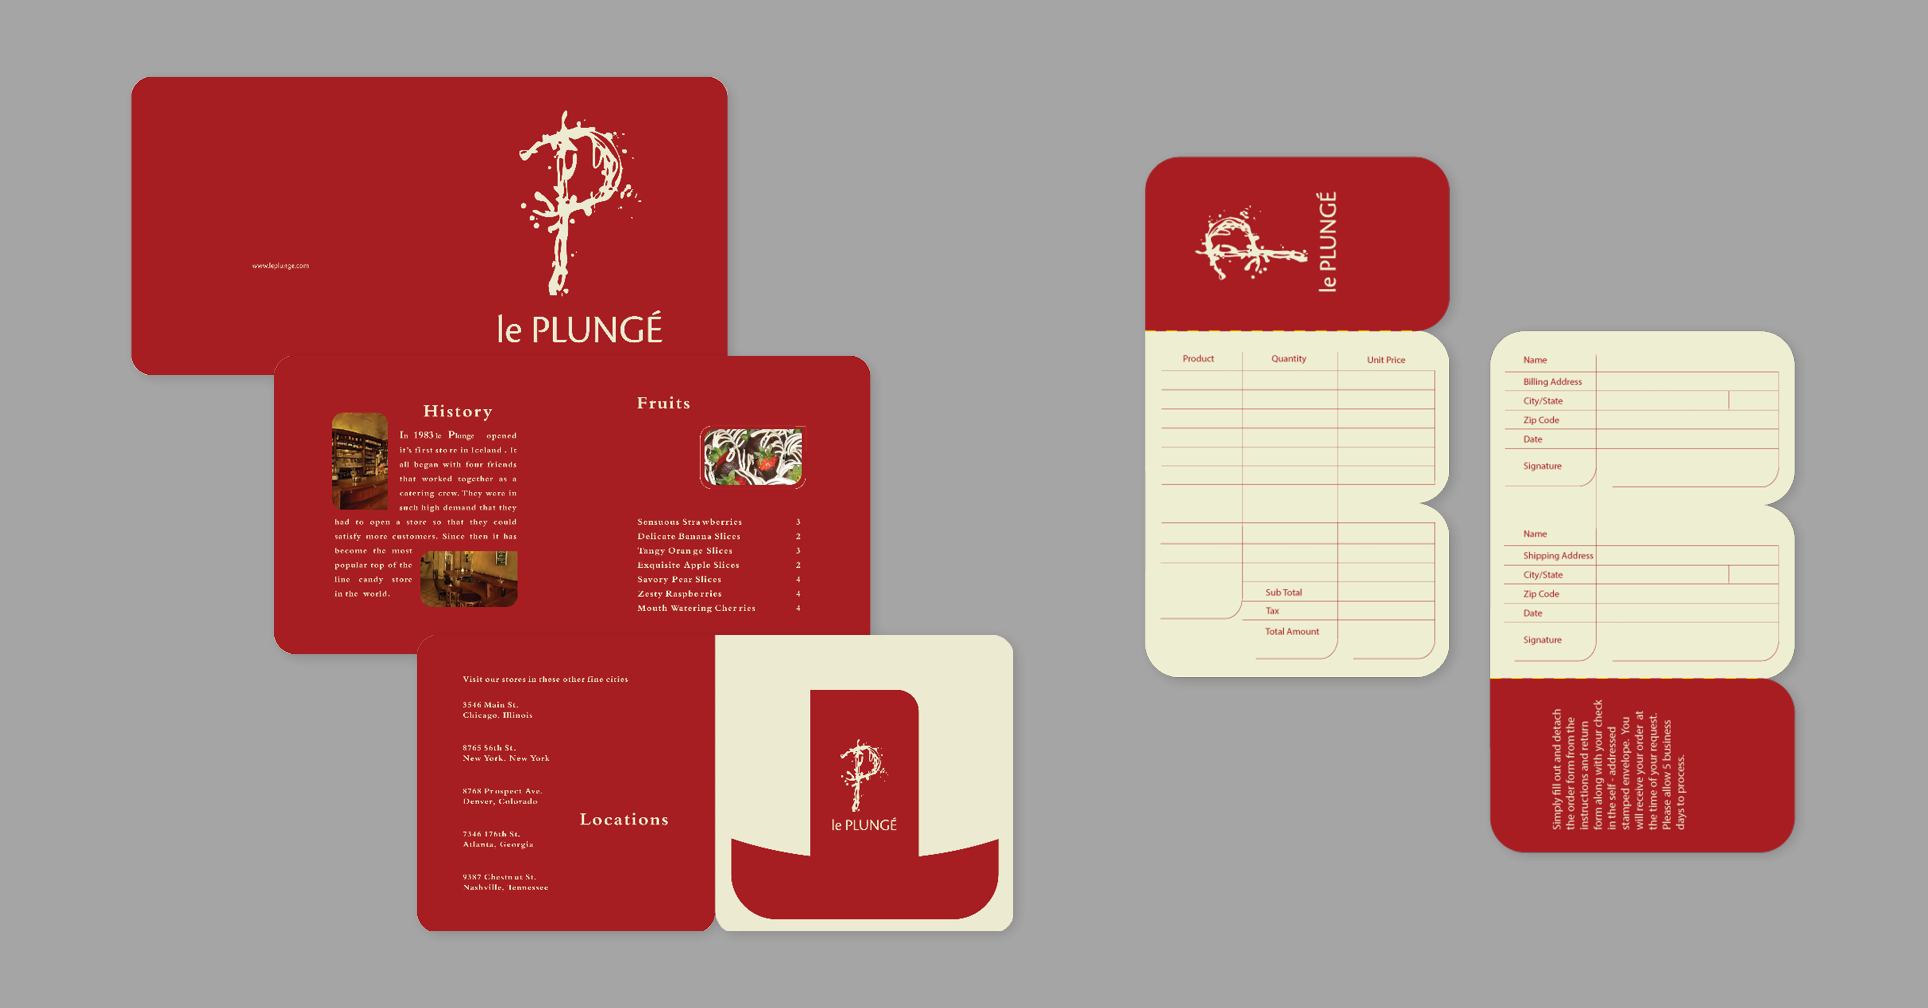 15-Concepts-Identity Package Part I-Restaurant Logo, Menu and Self-Service Order Form.rtna.png